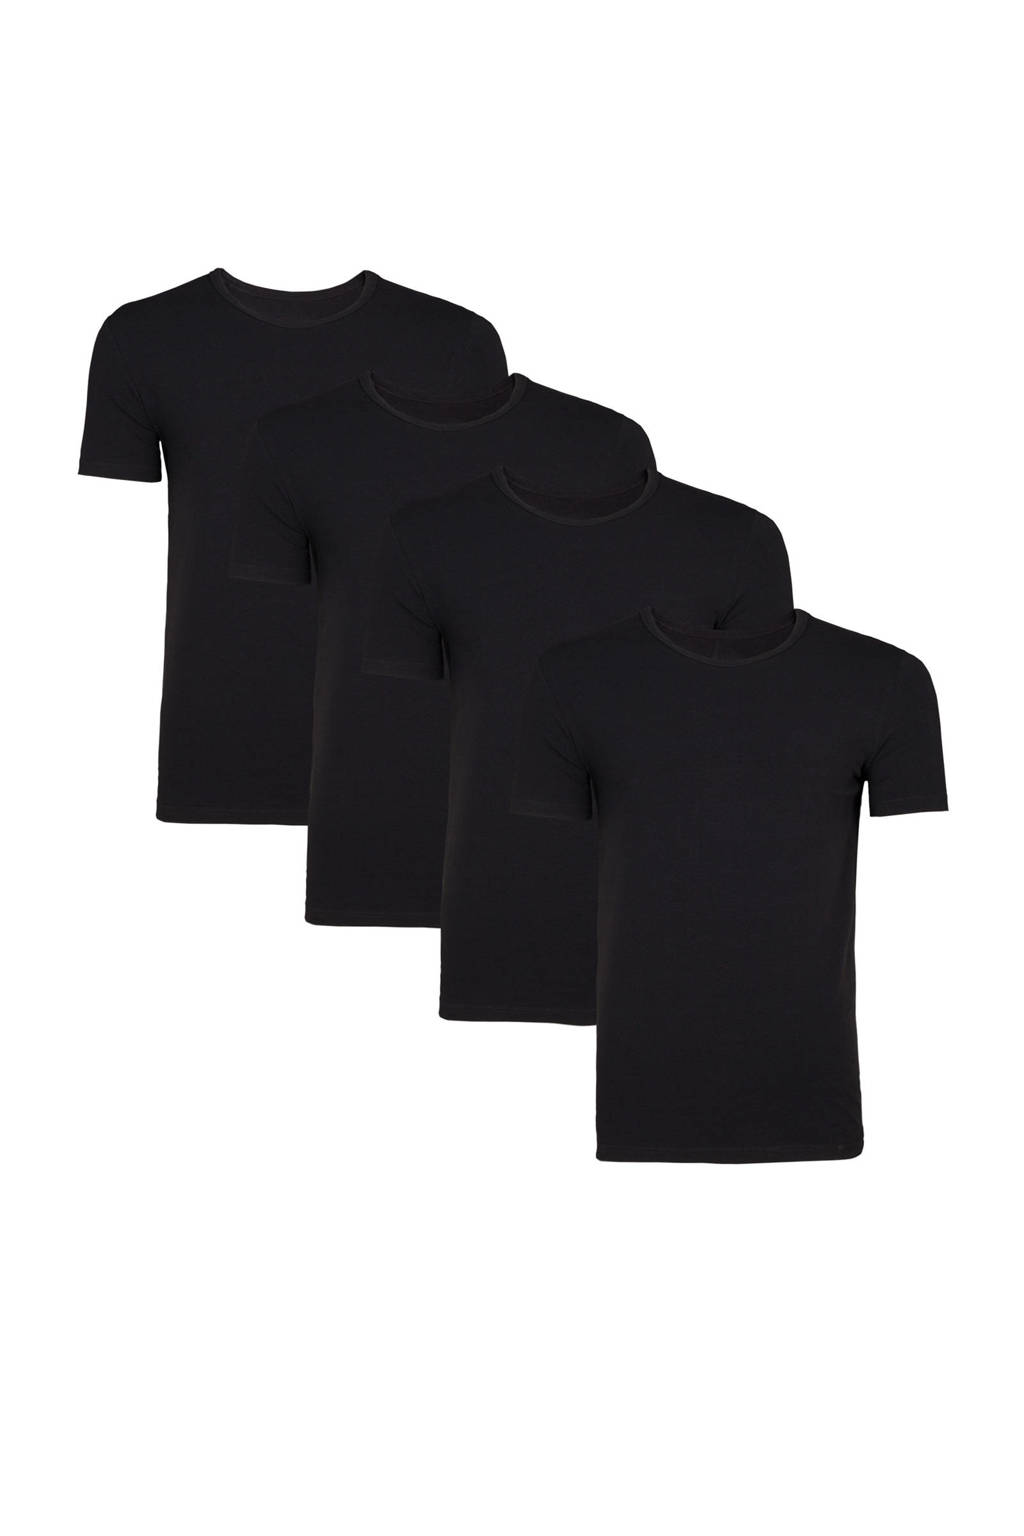 WE Fashion Fundamentals T-shirt zwart (set van 4), Zwart